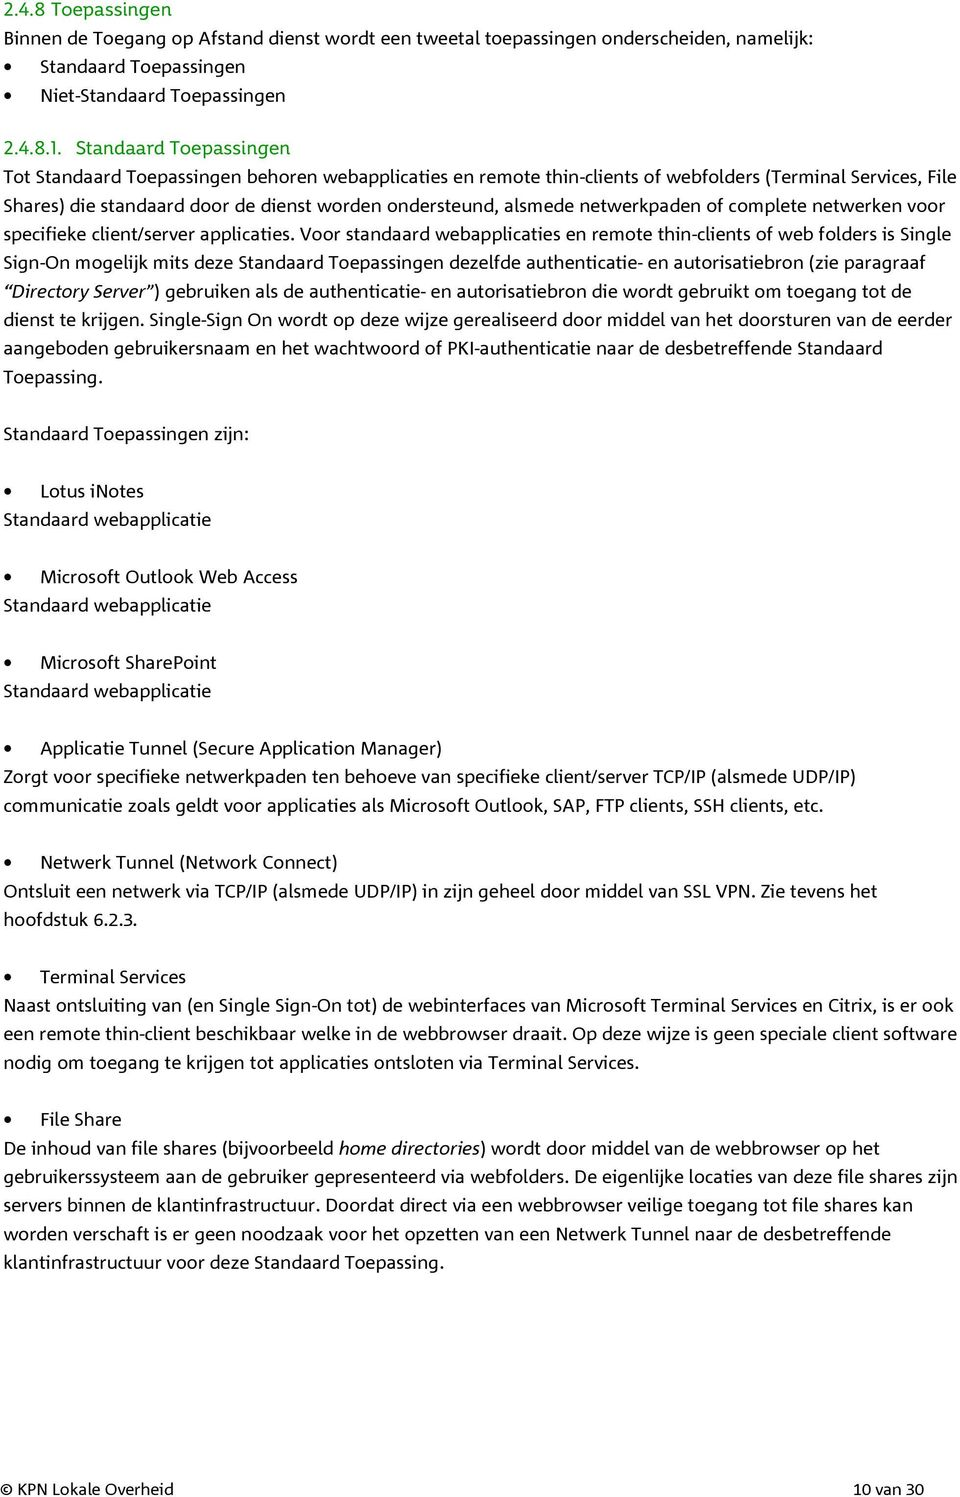 netwerkpaden of complete netwerken voor specifieke client/server applicaties.